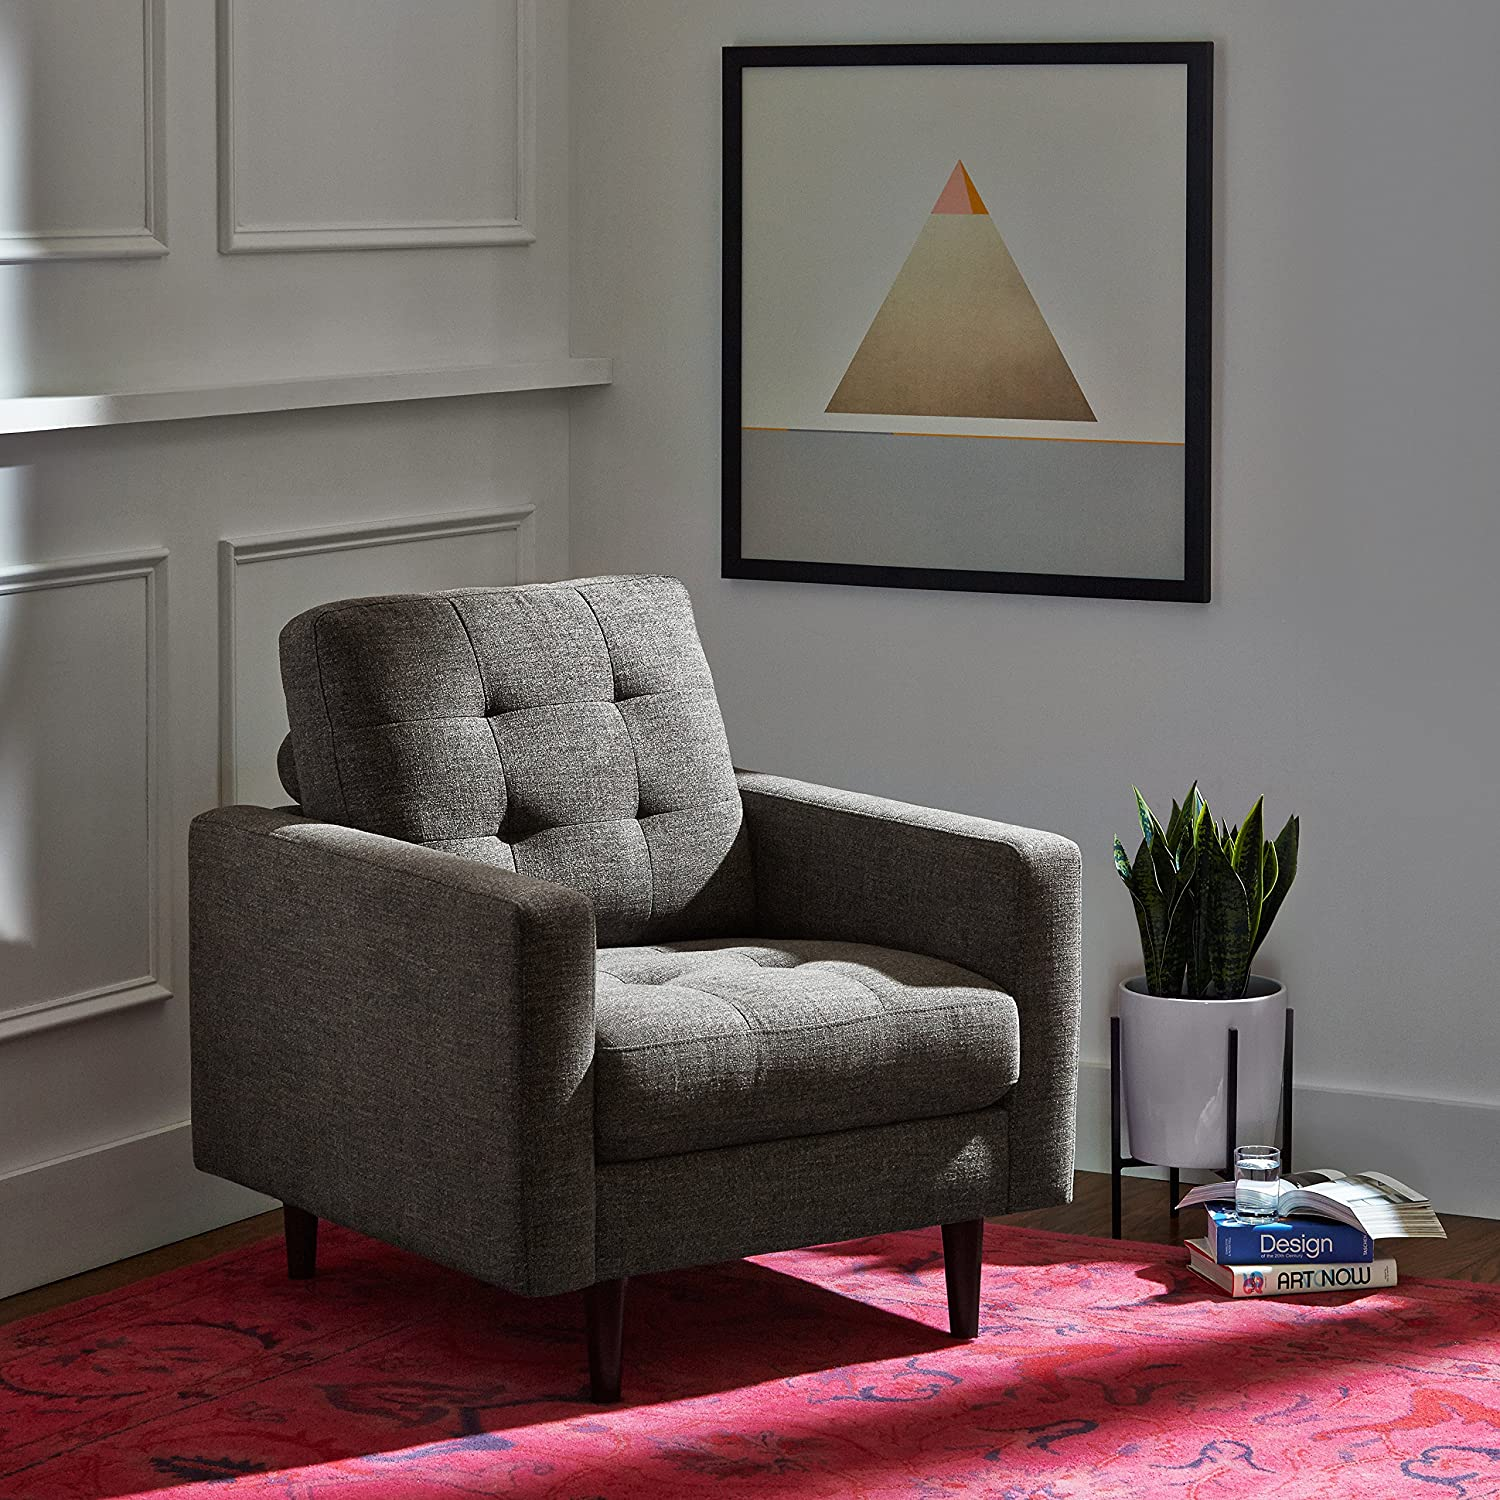 The 5 Best Accent Chairs In 2018: Reviews & Buying Guide 4